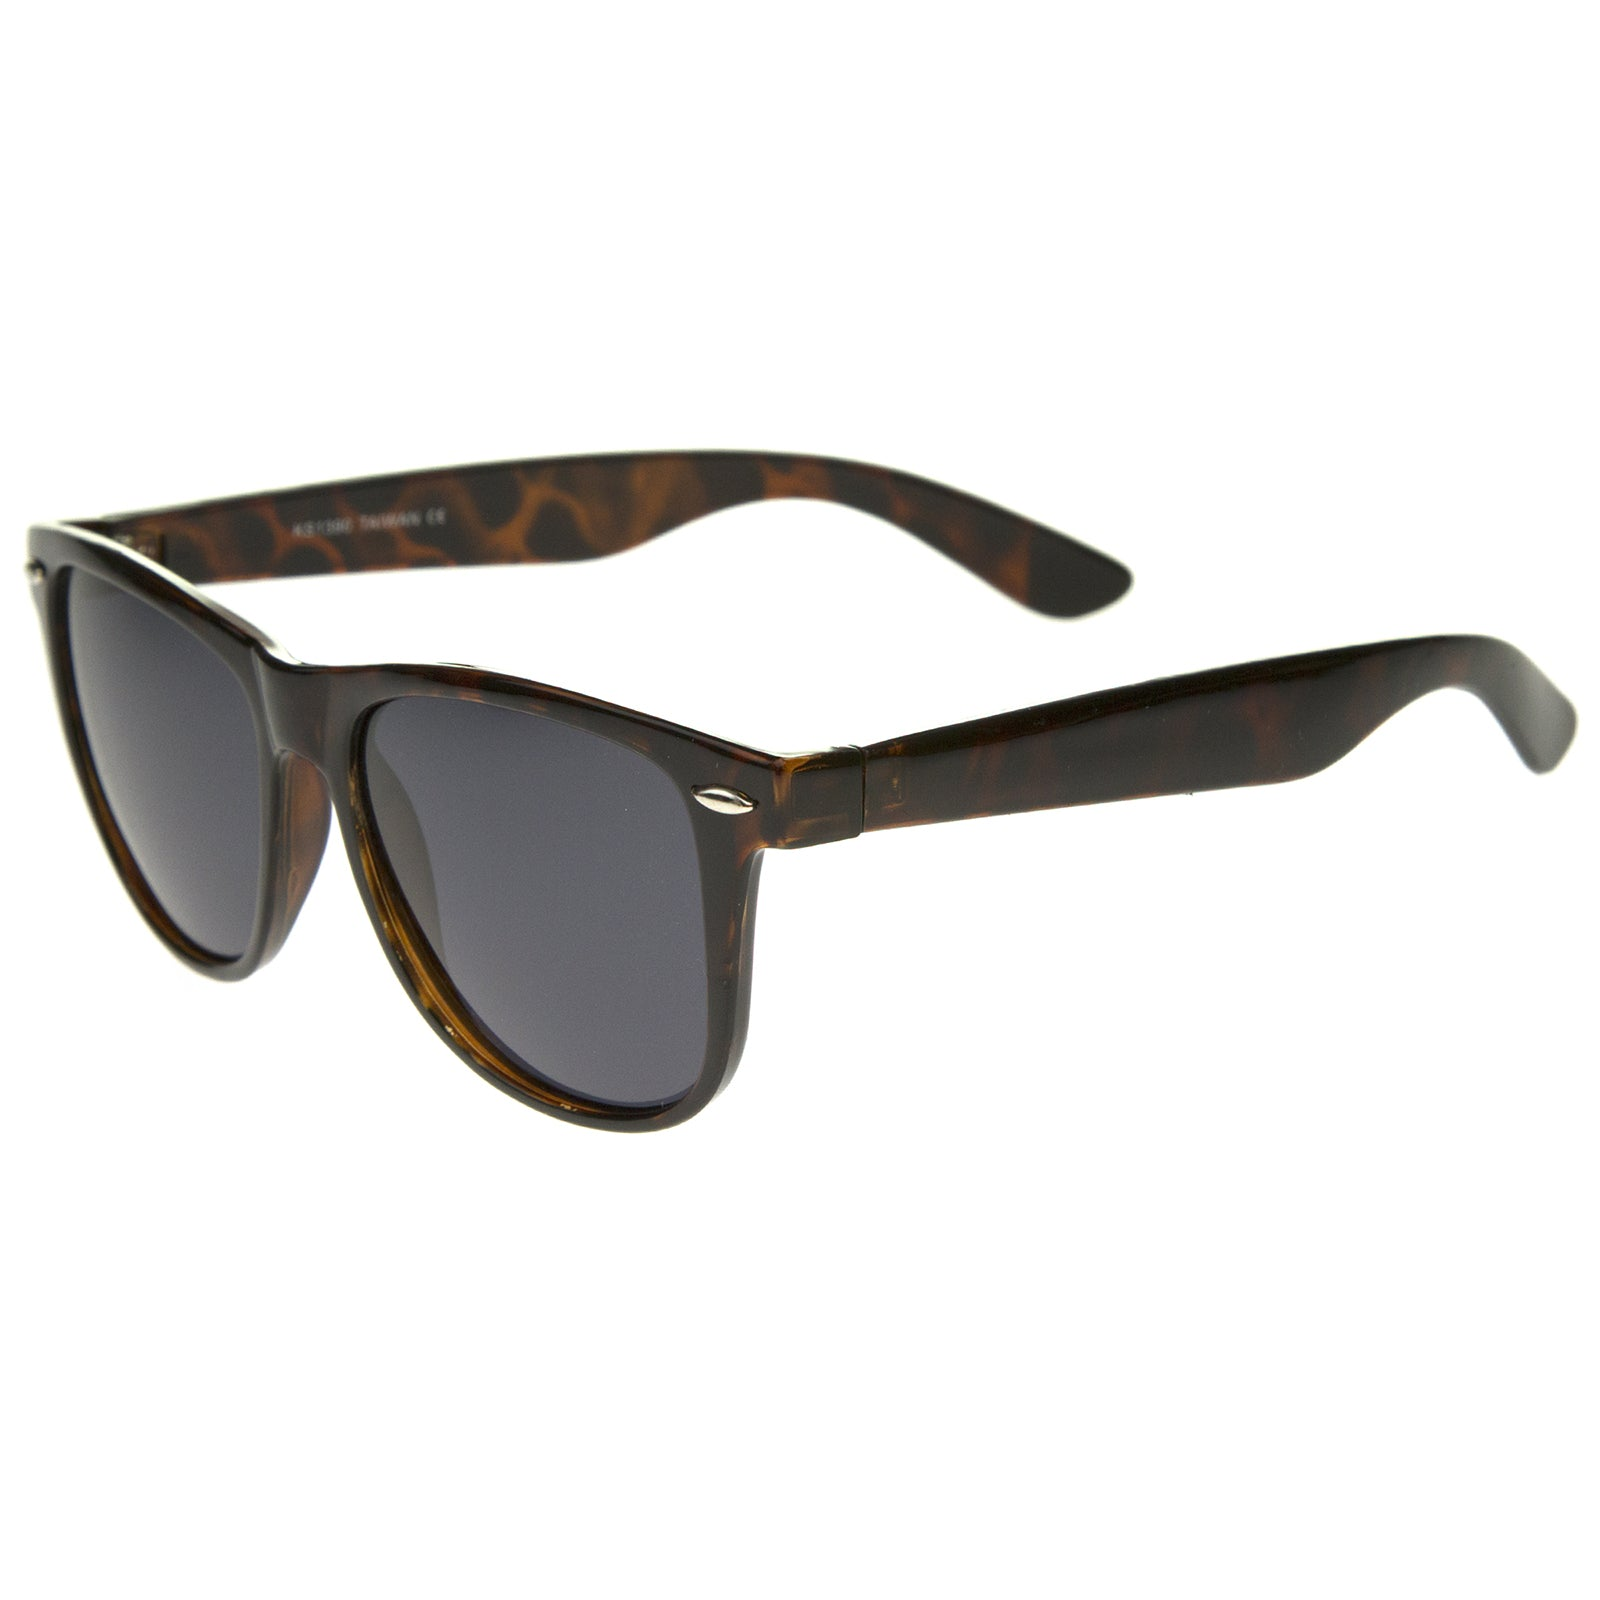 Large Oversize Classic Dark Tinted Lens Horn Rimmed Sunglasses 55mm - sunglass.la - 7